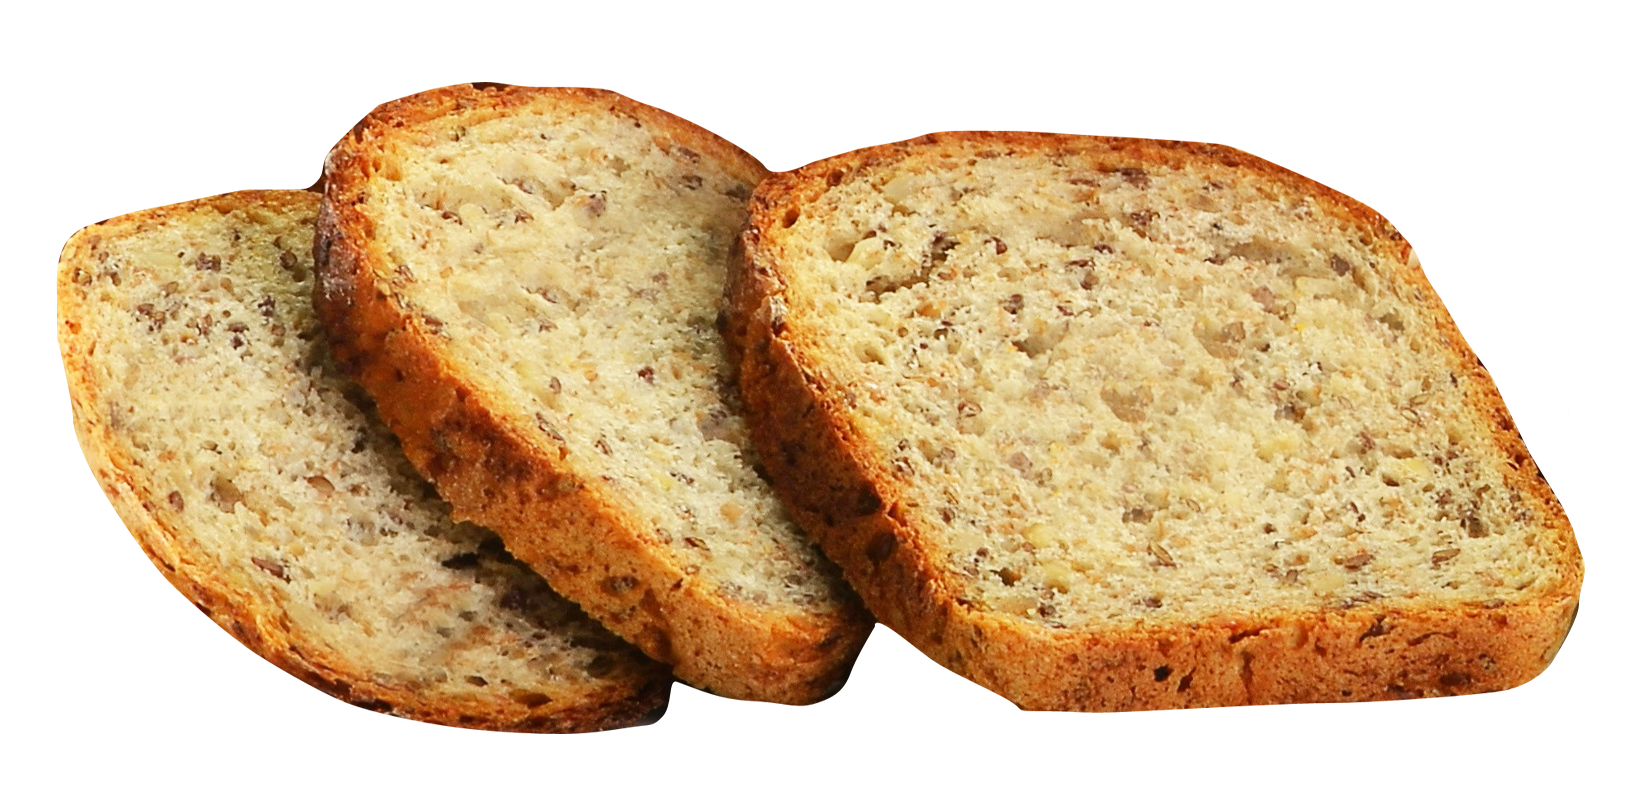 Bread Slices Png Image Png Images Bread Food